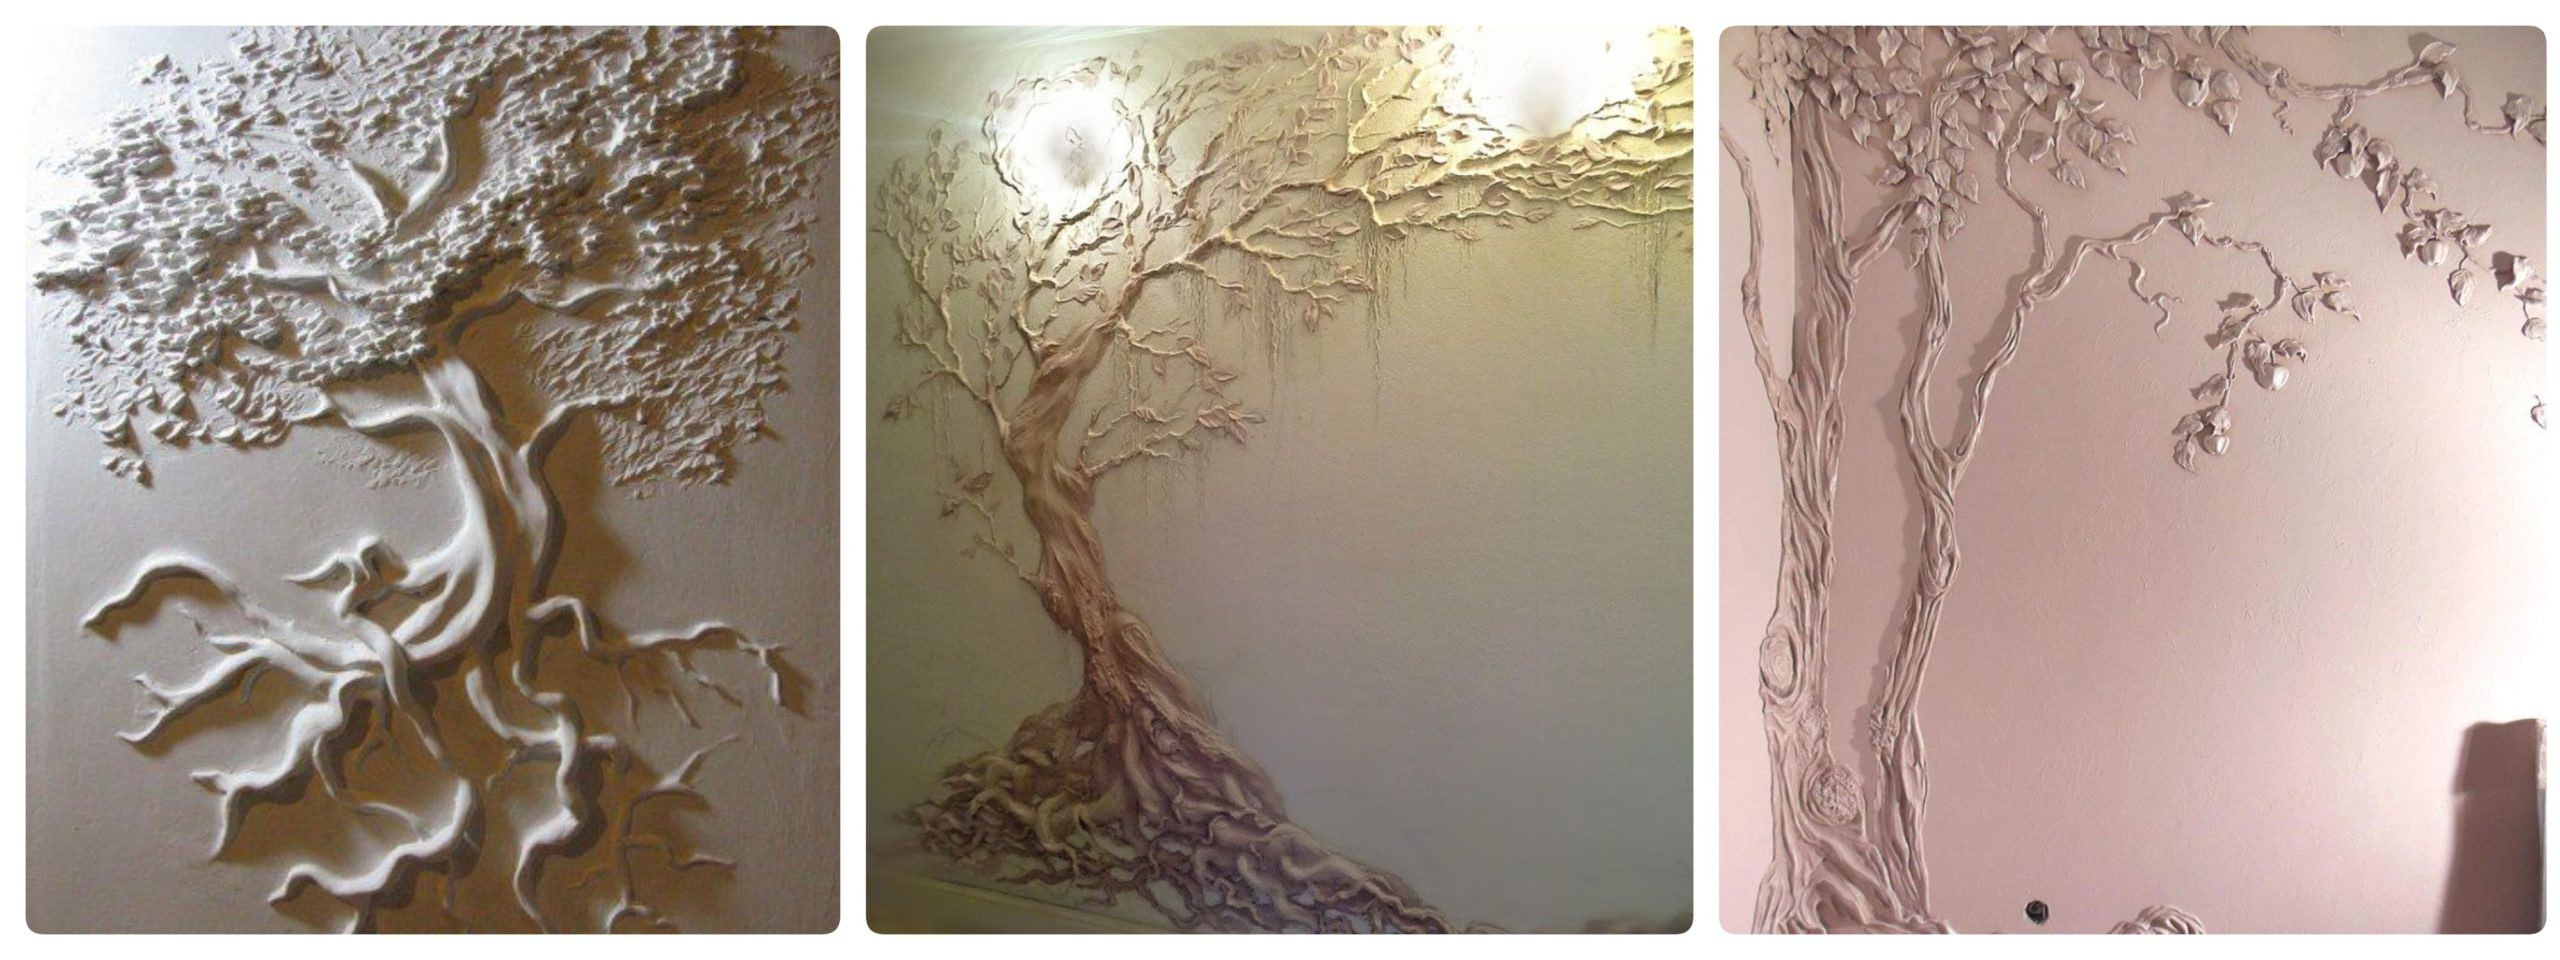 Tree wall sculpture painting as an element of interior design